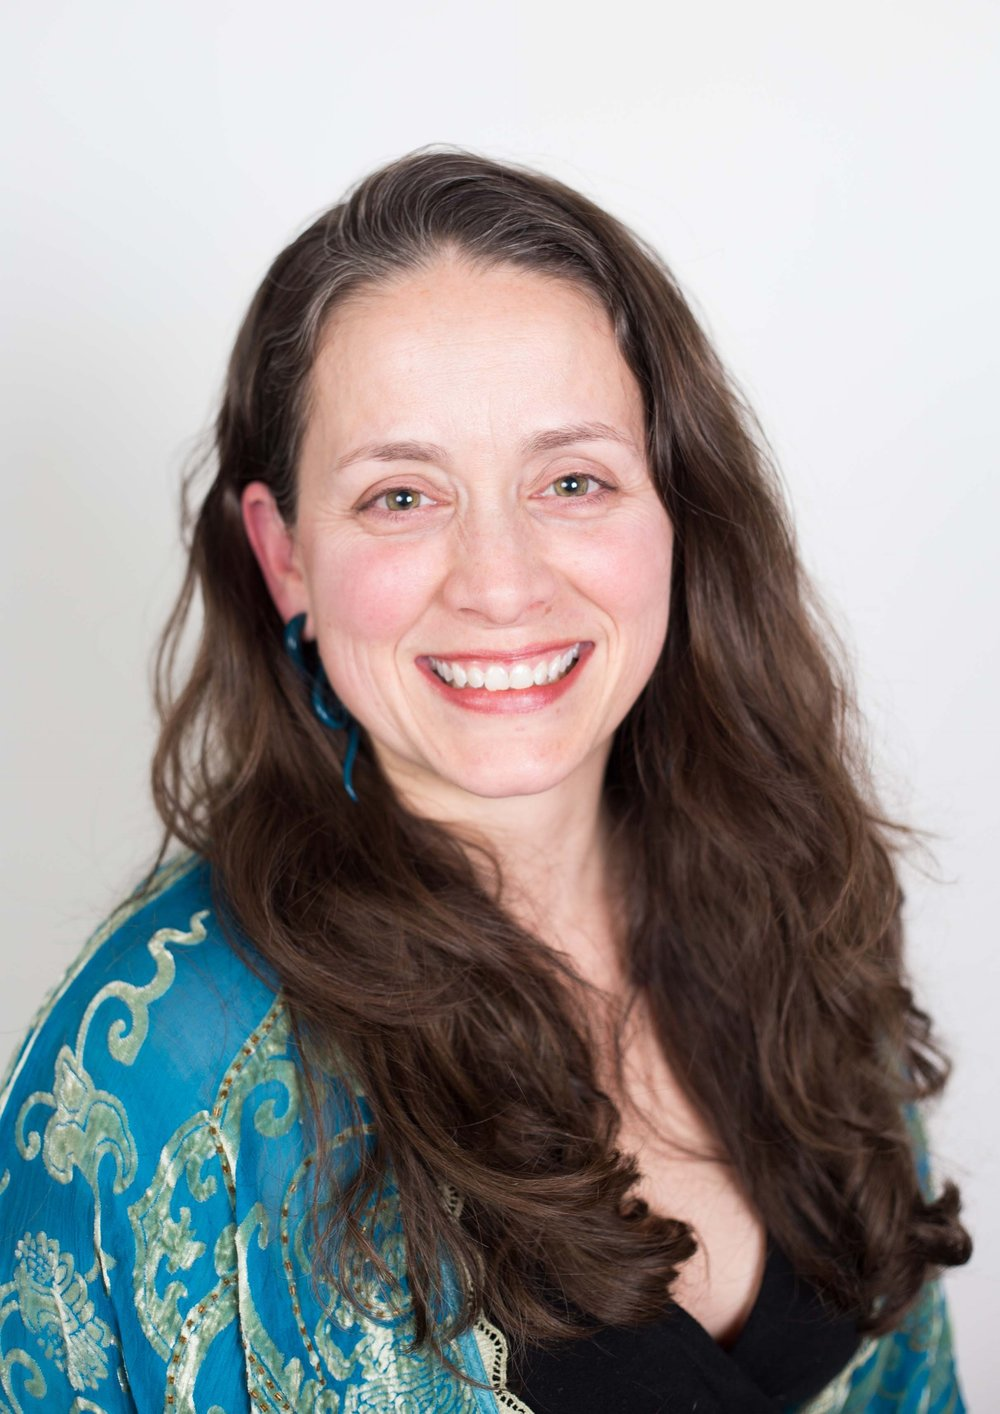 Jeni Standard,  Team Lead, Educator, Doula, Lactation Counselor